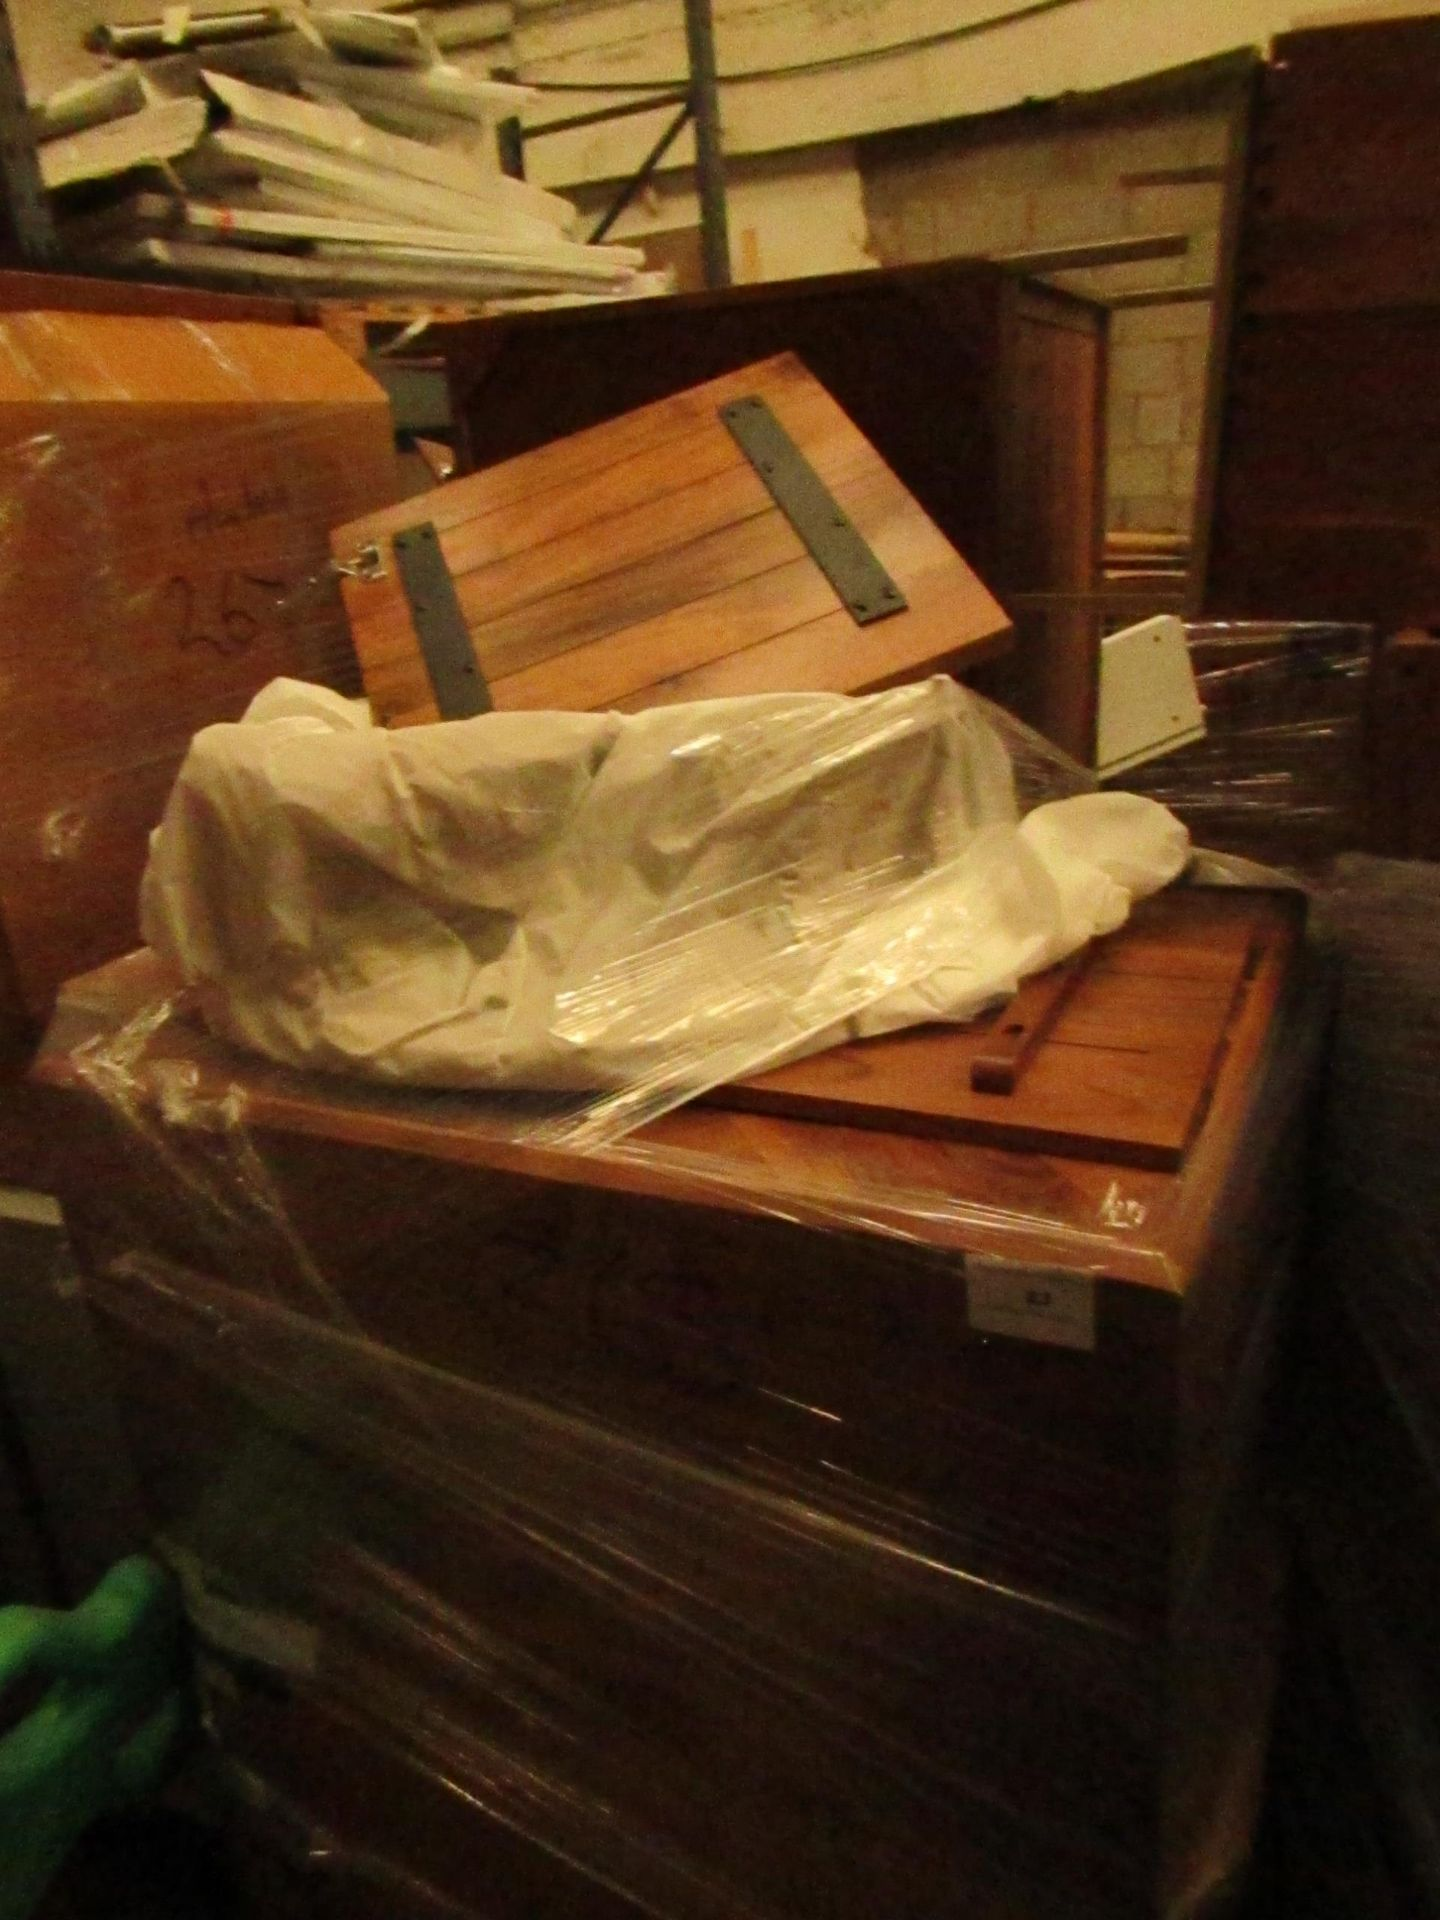   1X   PALLET OF SWOON B.E.R FURNITURE, UNMANIFESTED, WE HAVE NO IDEA WHAT IS ON THIS PALLET OR